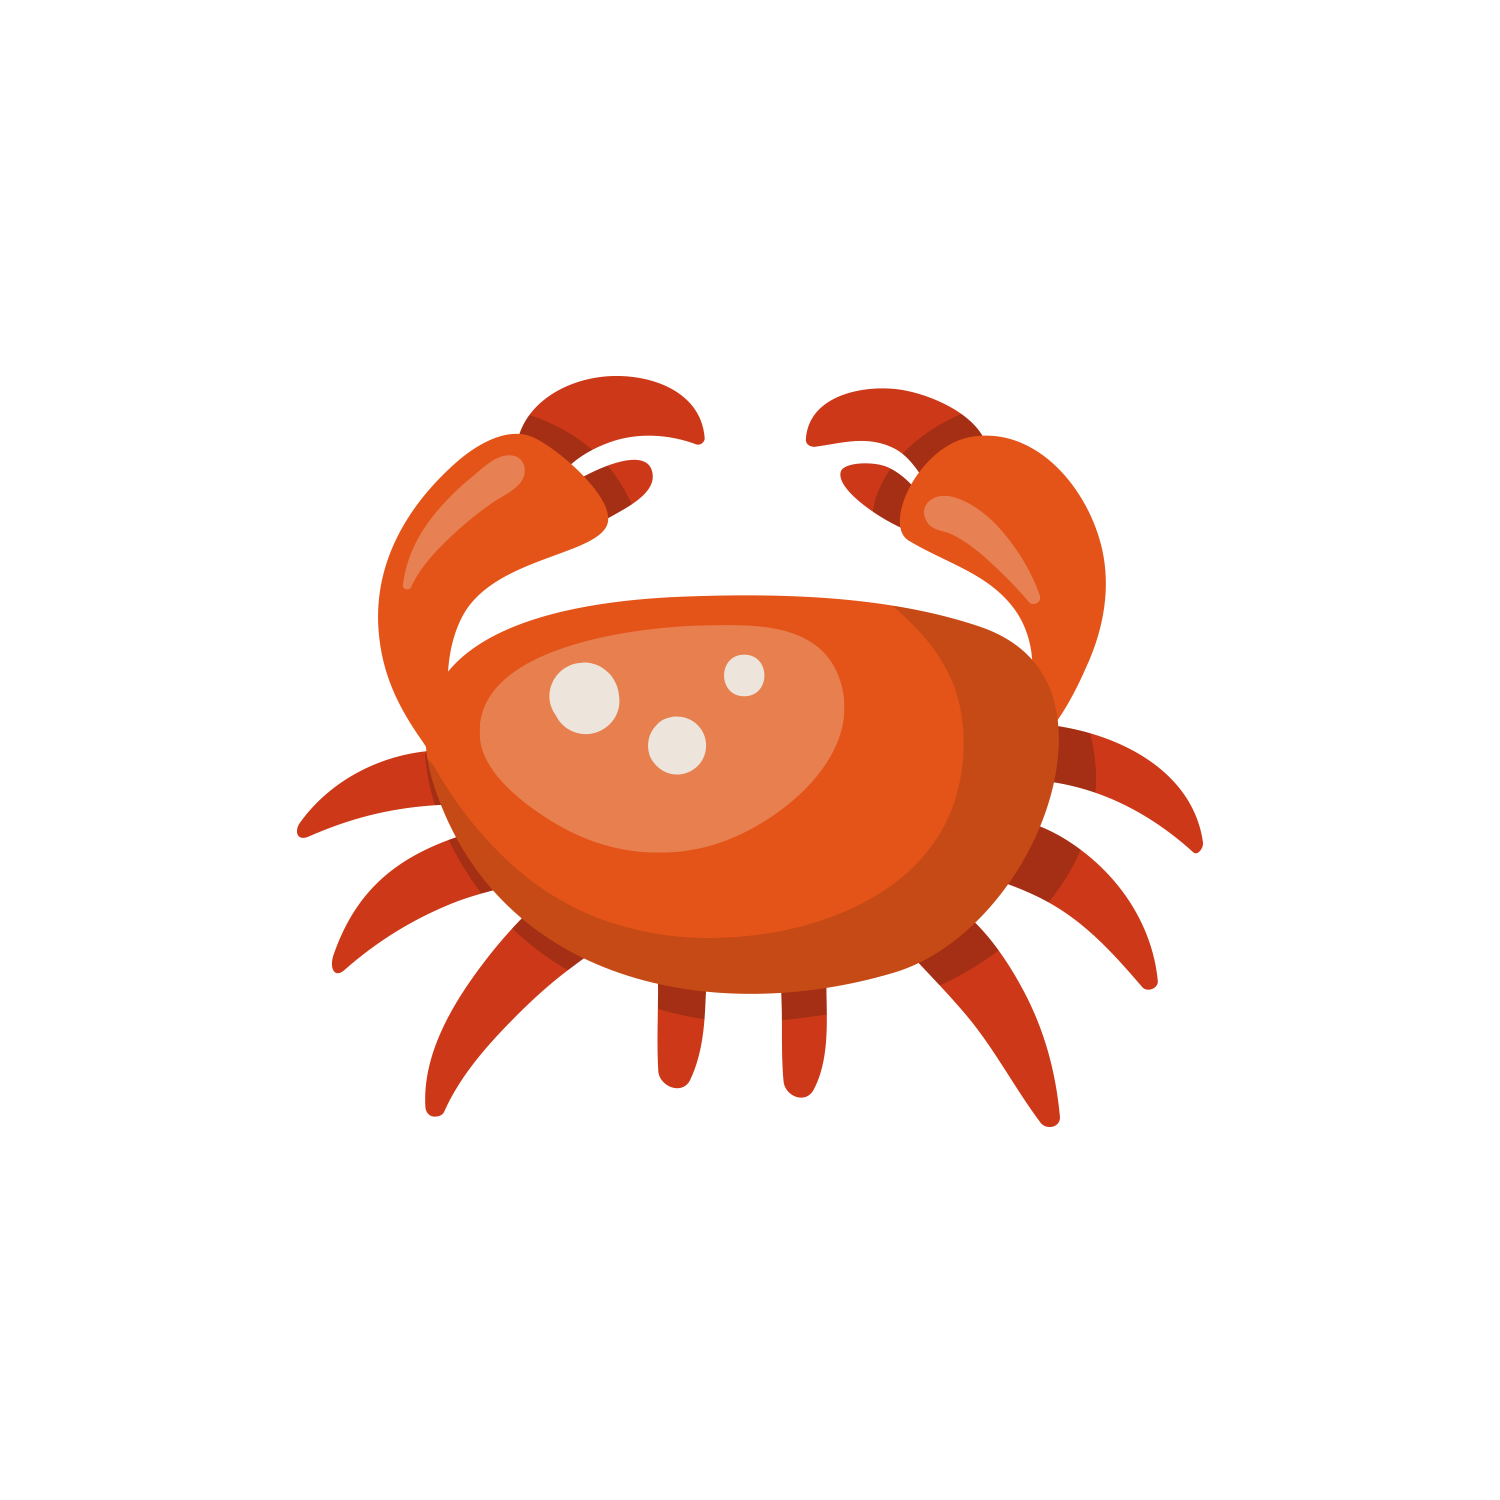 Seafood clipart king crab. Cartoon clip art red